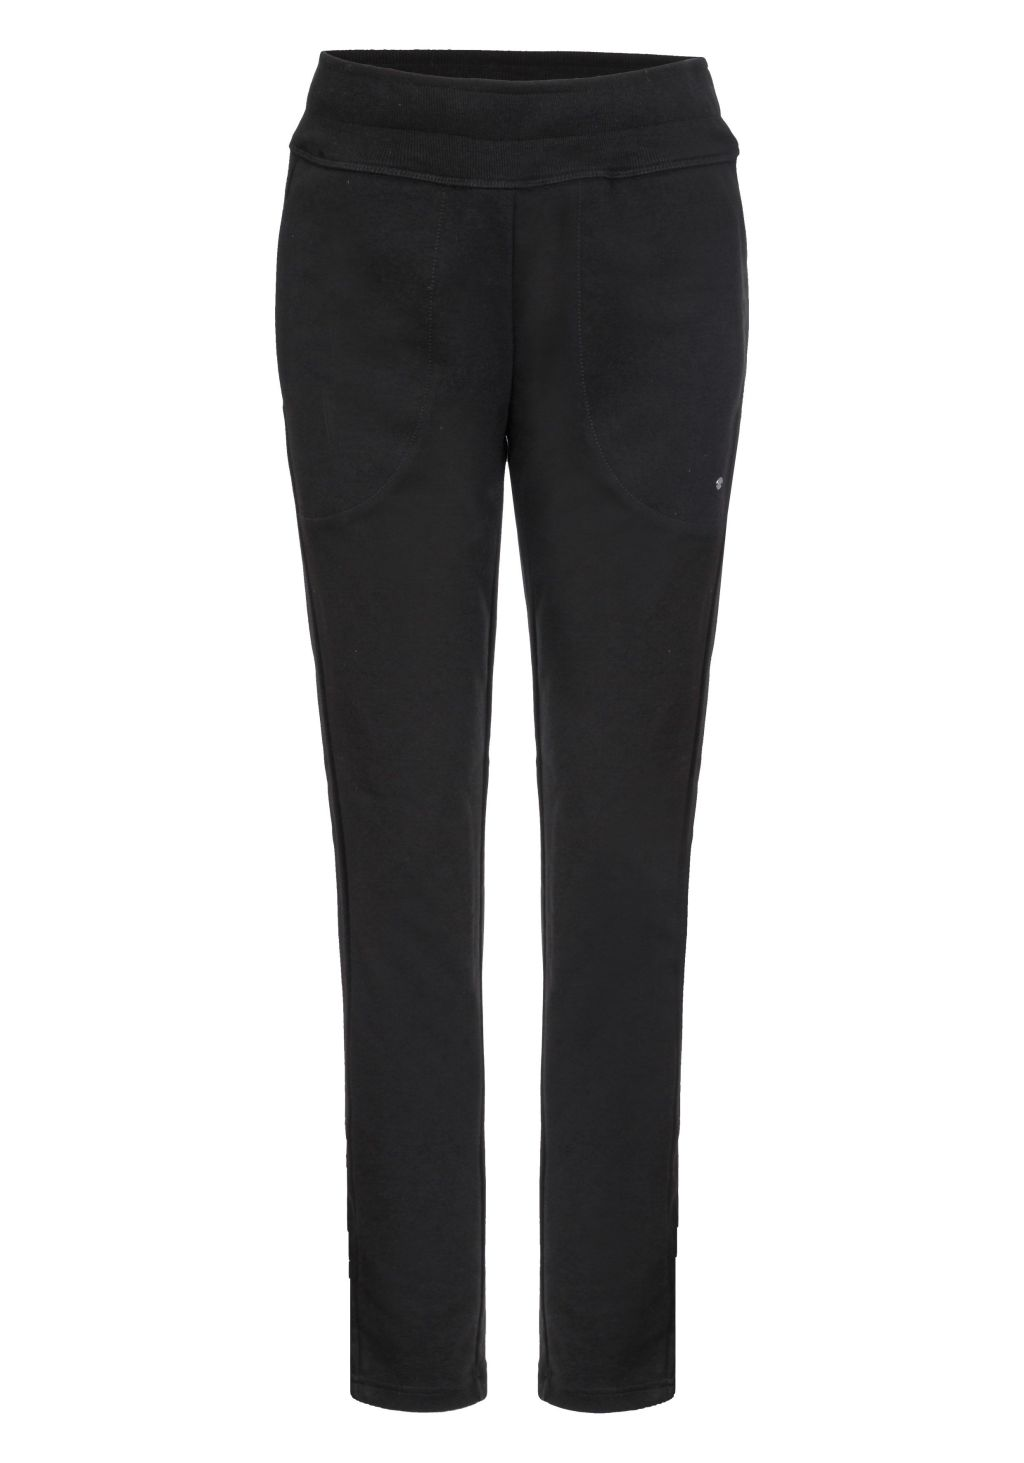 Luhta Heikke College Pants W - Naisten collegehousut - Intersport 538a6153da